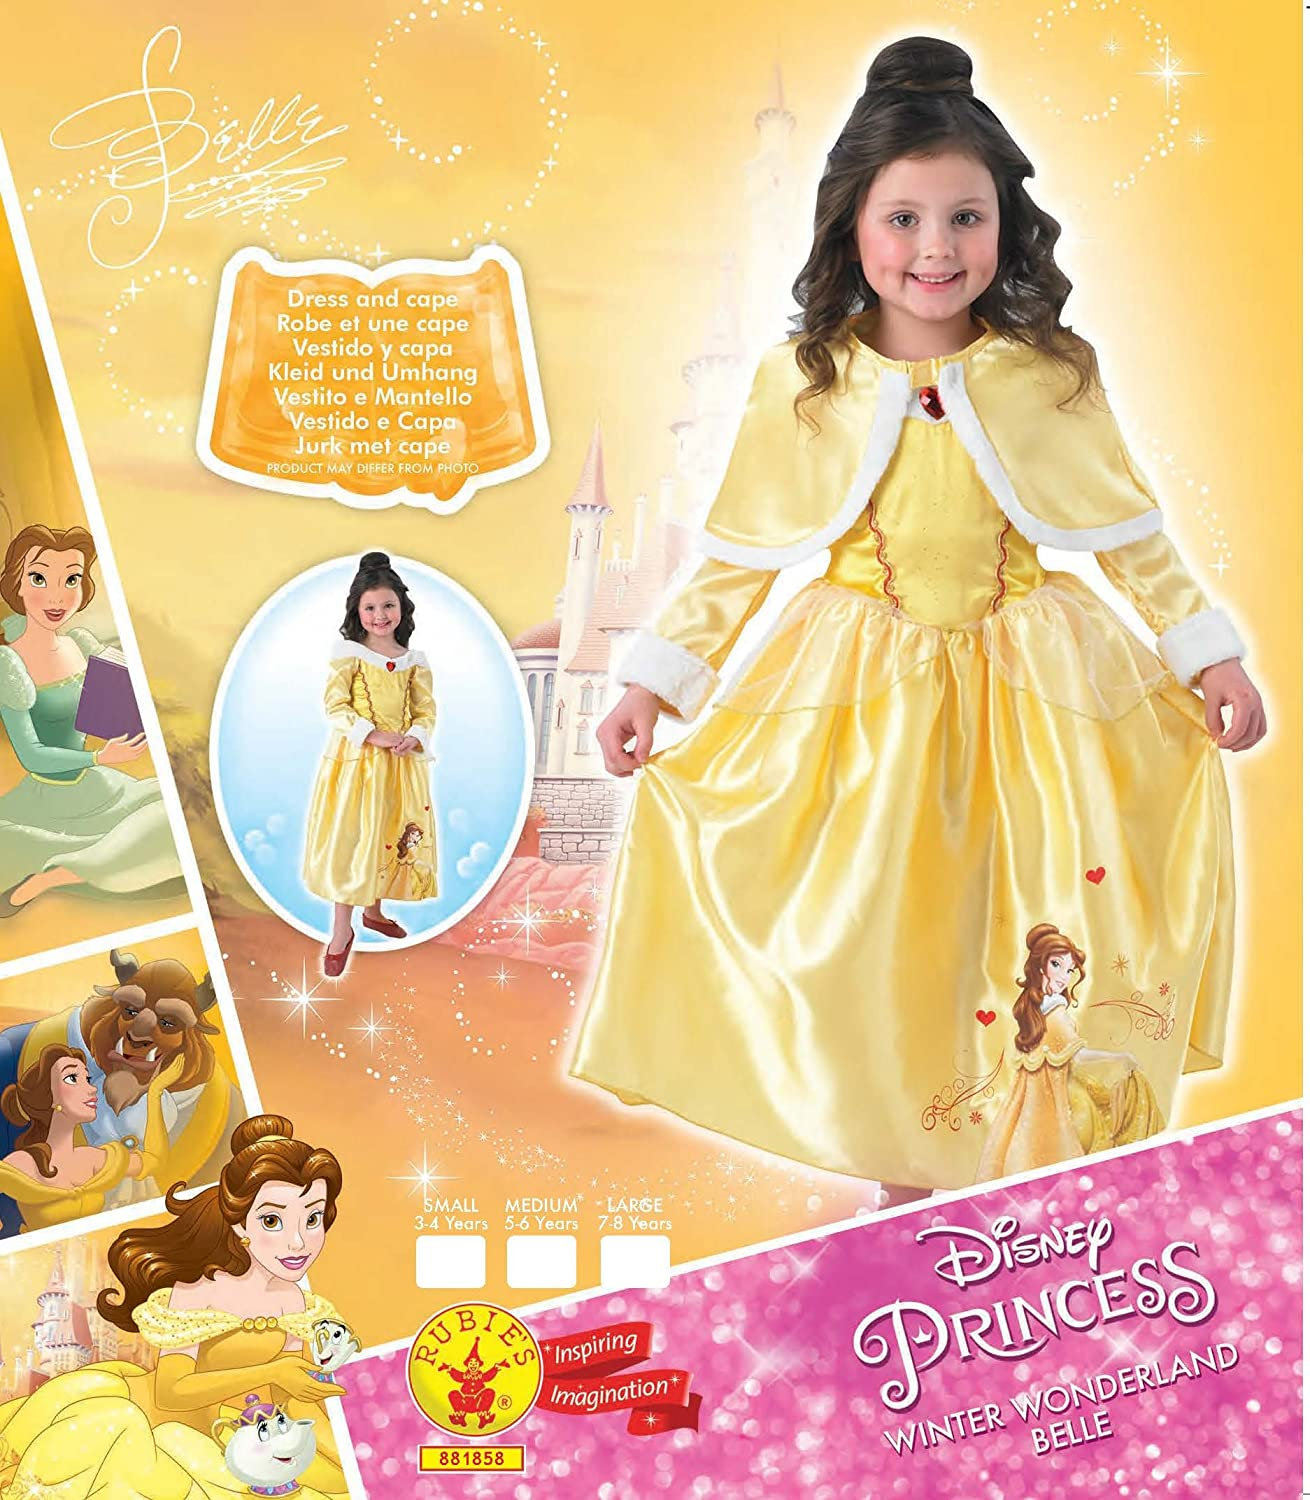 Amazon.com: Disney Princess Belle Winter Wonderland Costume: Home Improvement